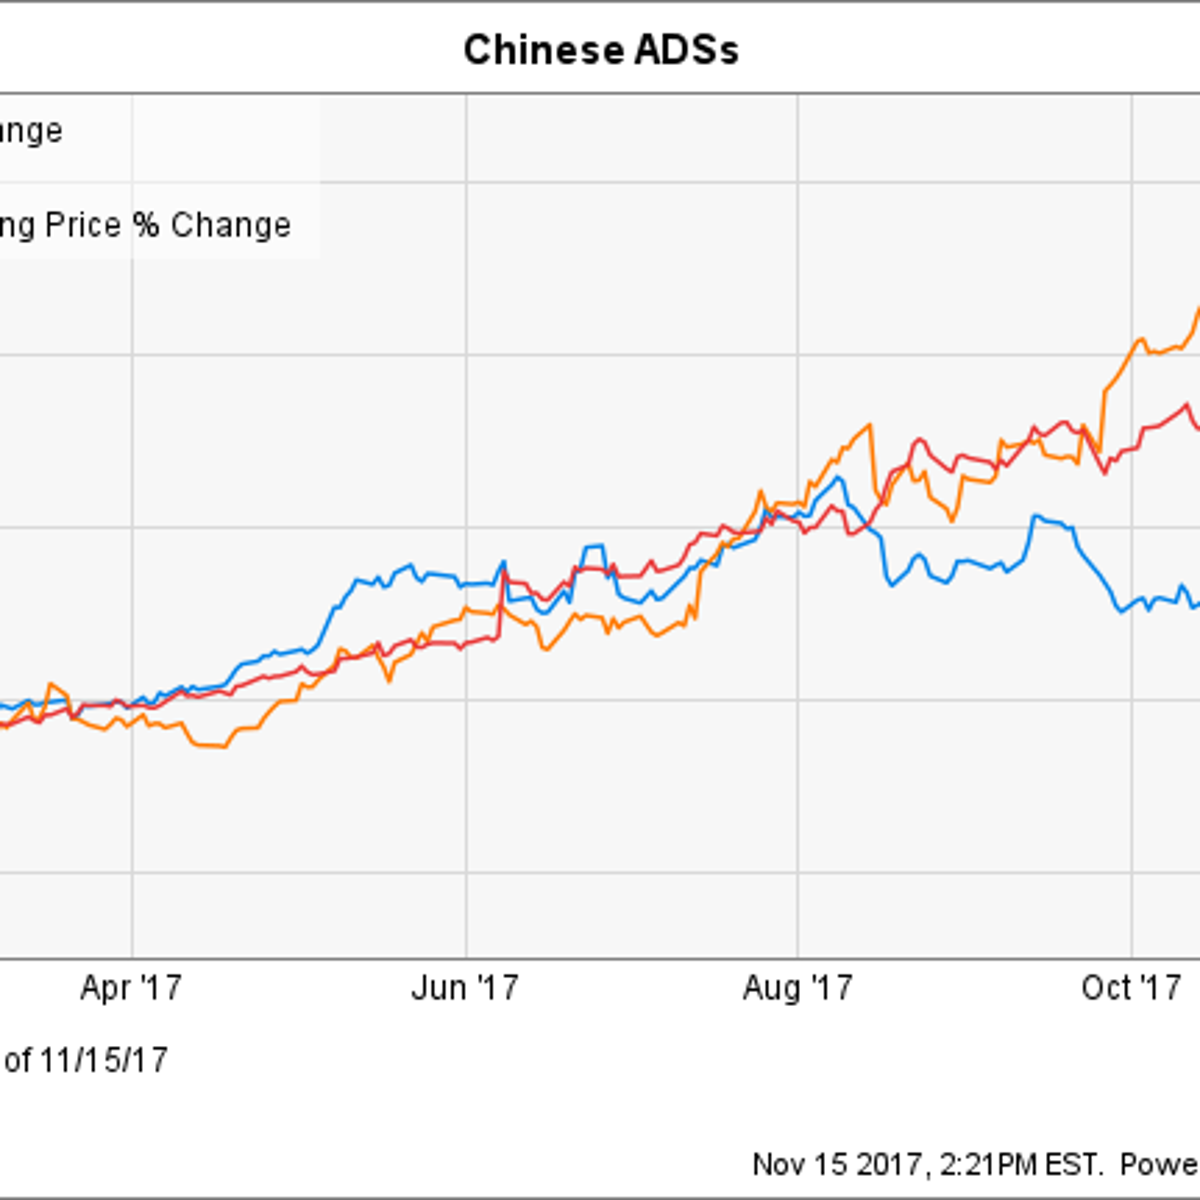 Forget Alibaba and JD com: This Little-Known Chinese Stock